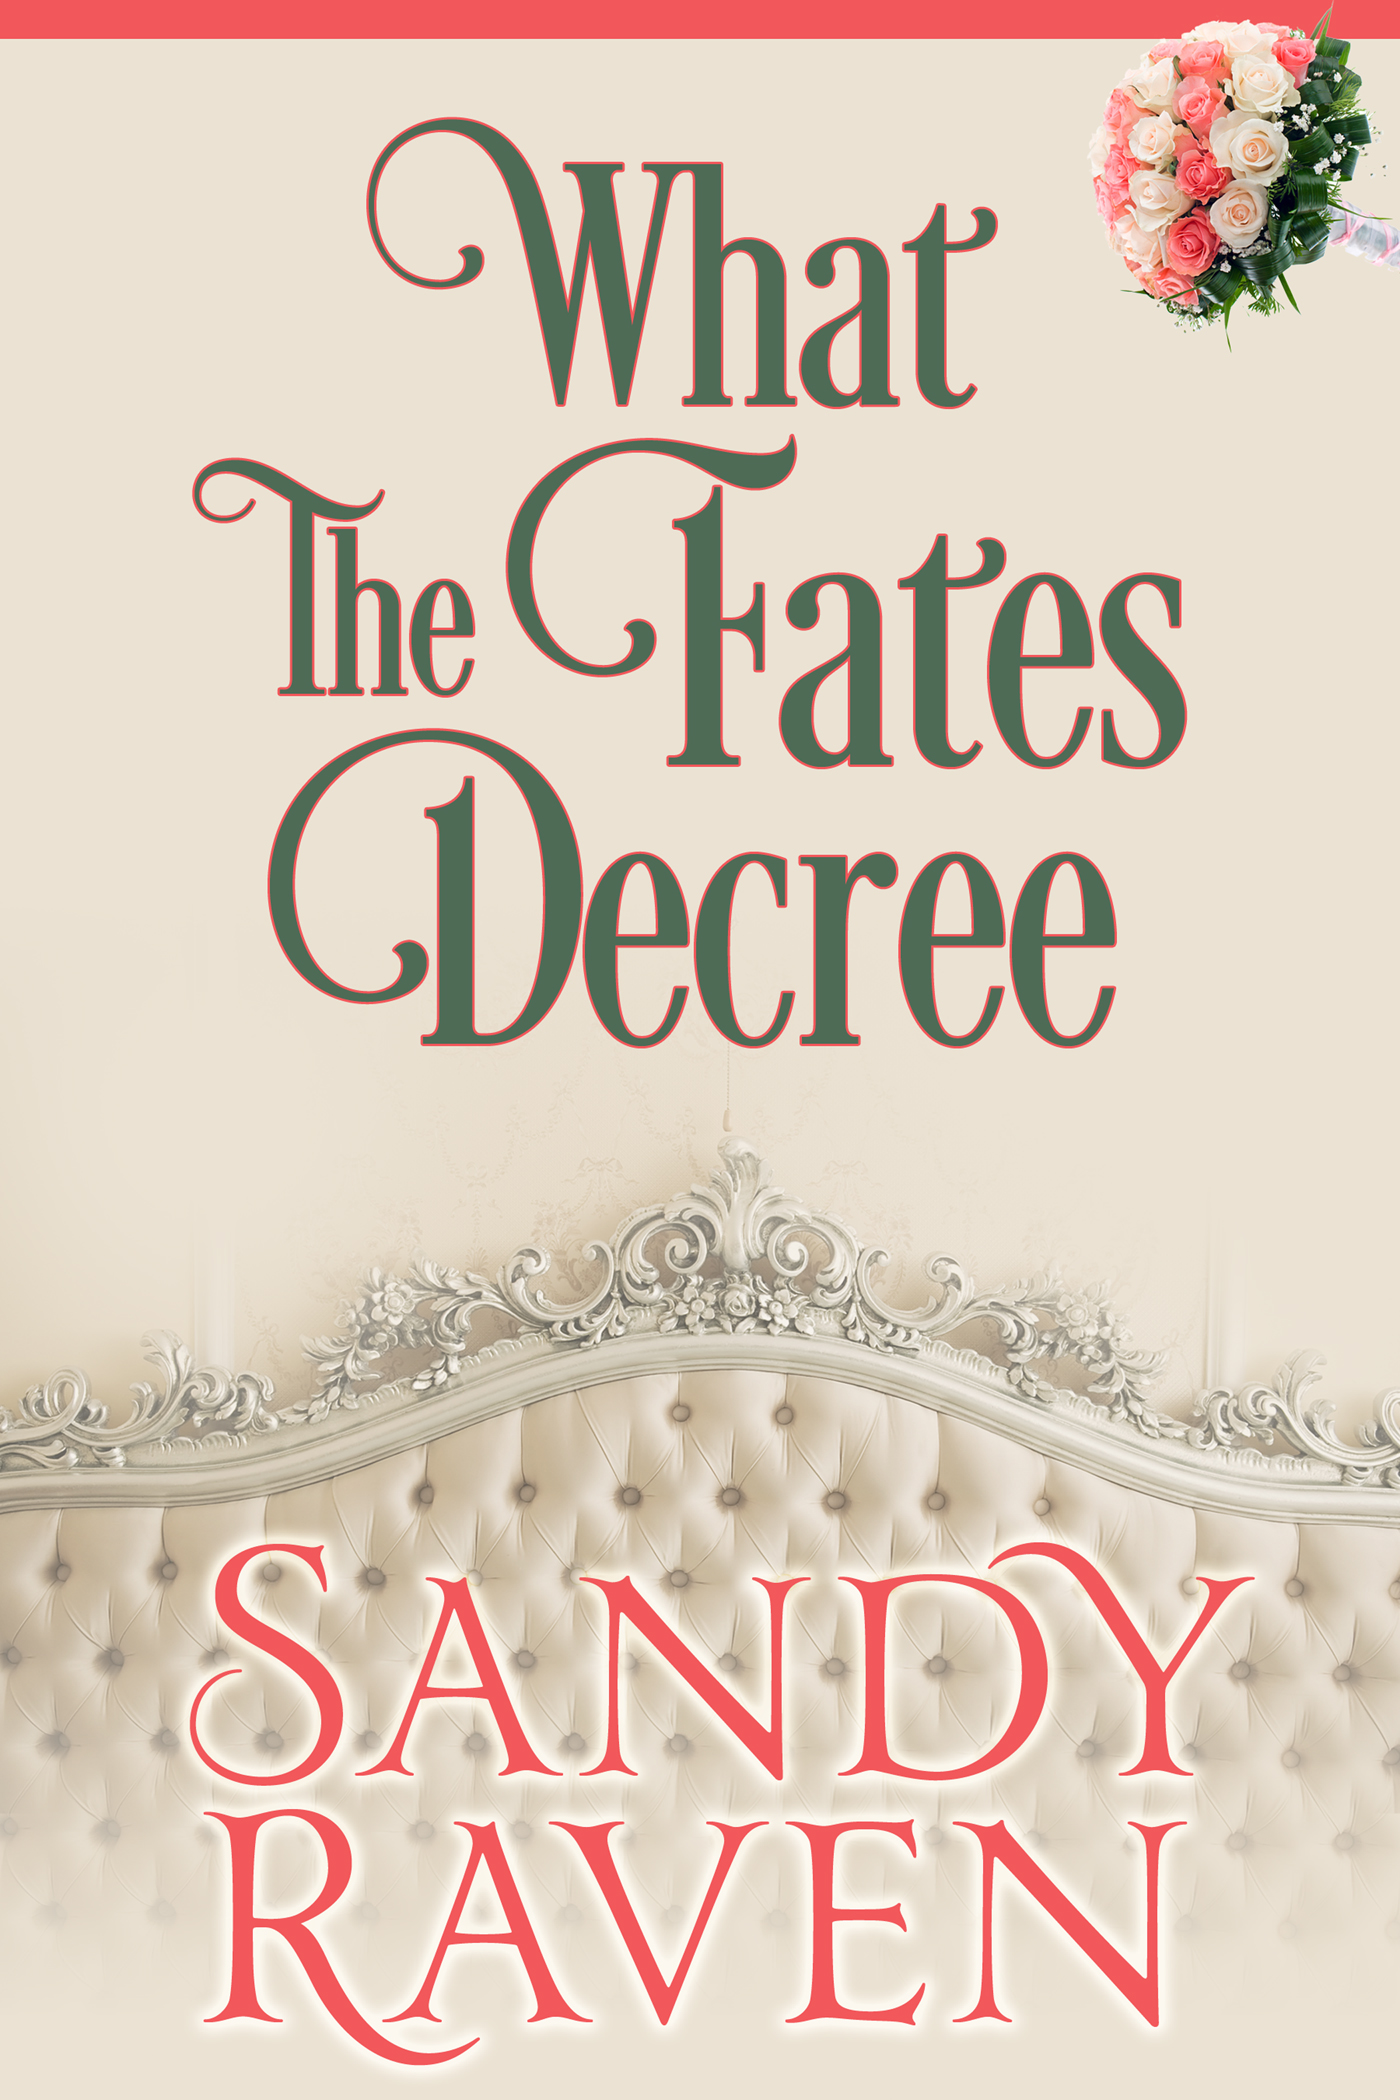 What the fates decree